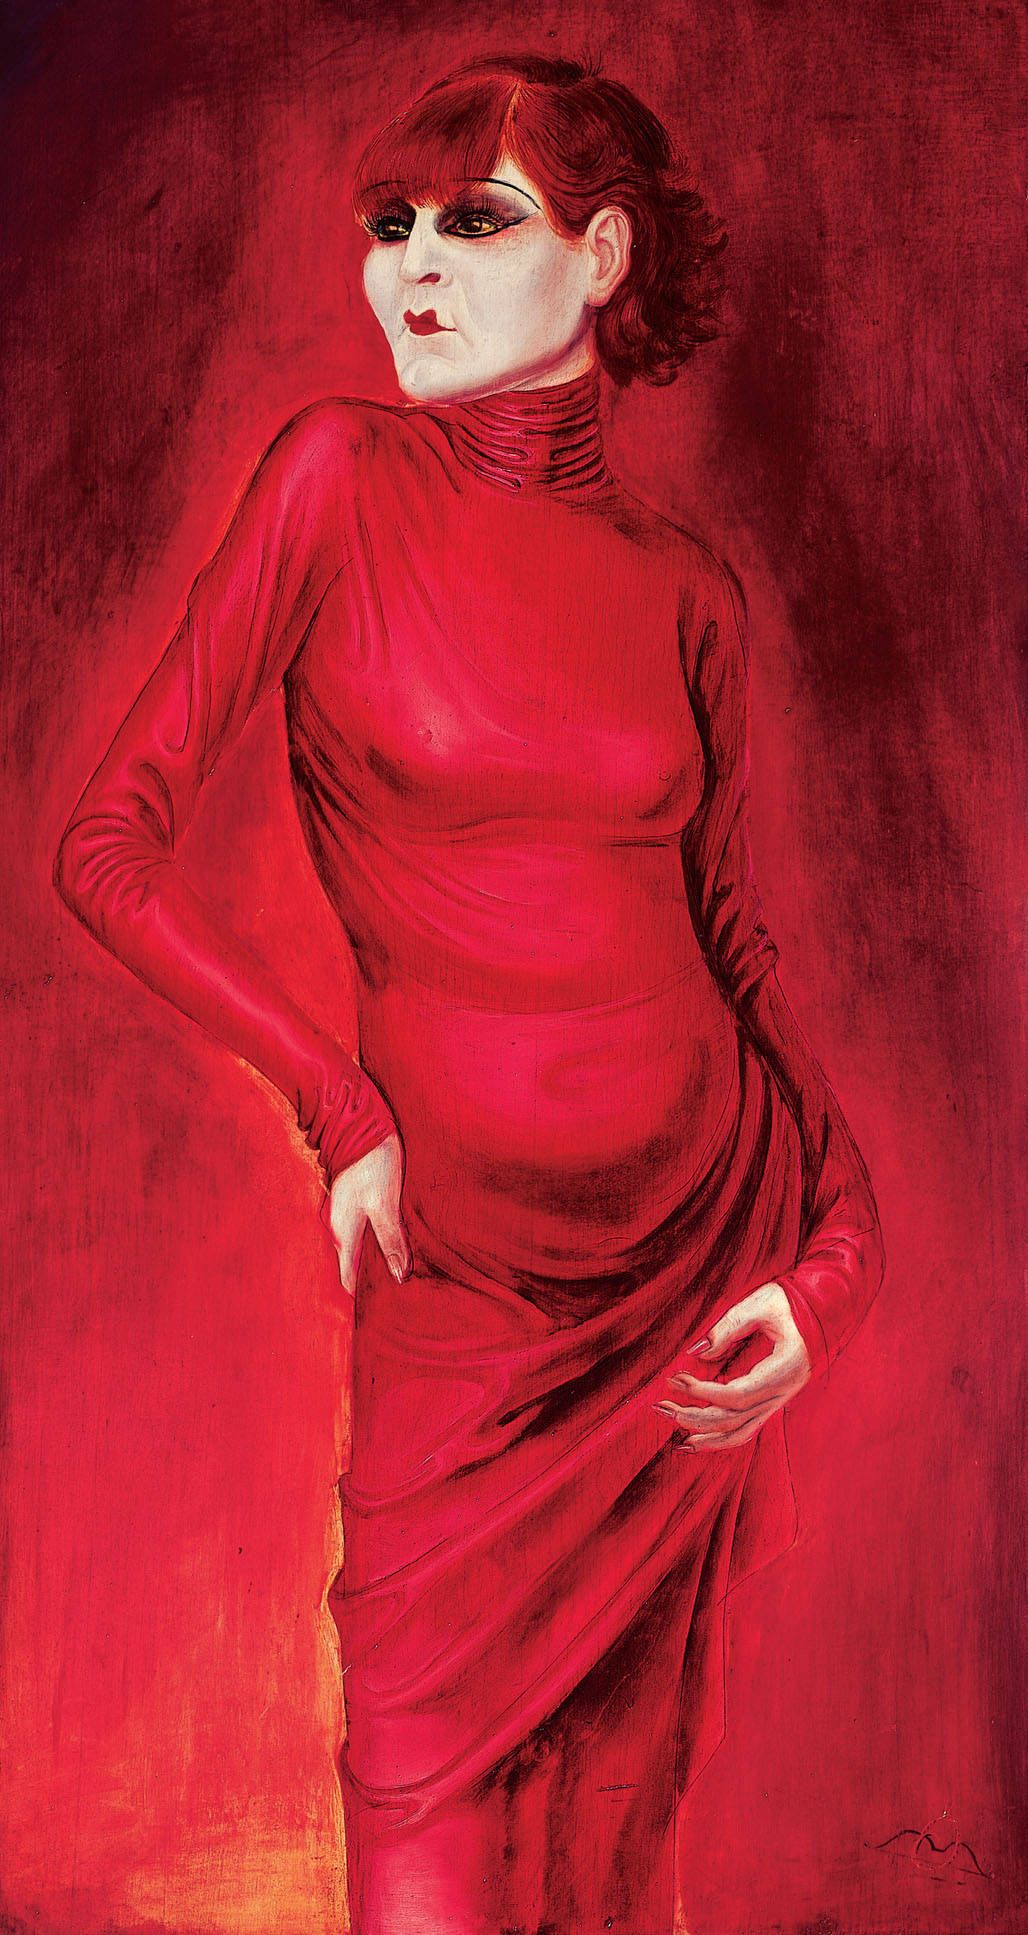 Anita Berber, The Dancer  - 1925 - by Otto Dix (German, 1891-1969) - Oil and tempera on plywood - 120x65cm. - Kunstmuseum Stuttgart